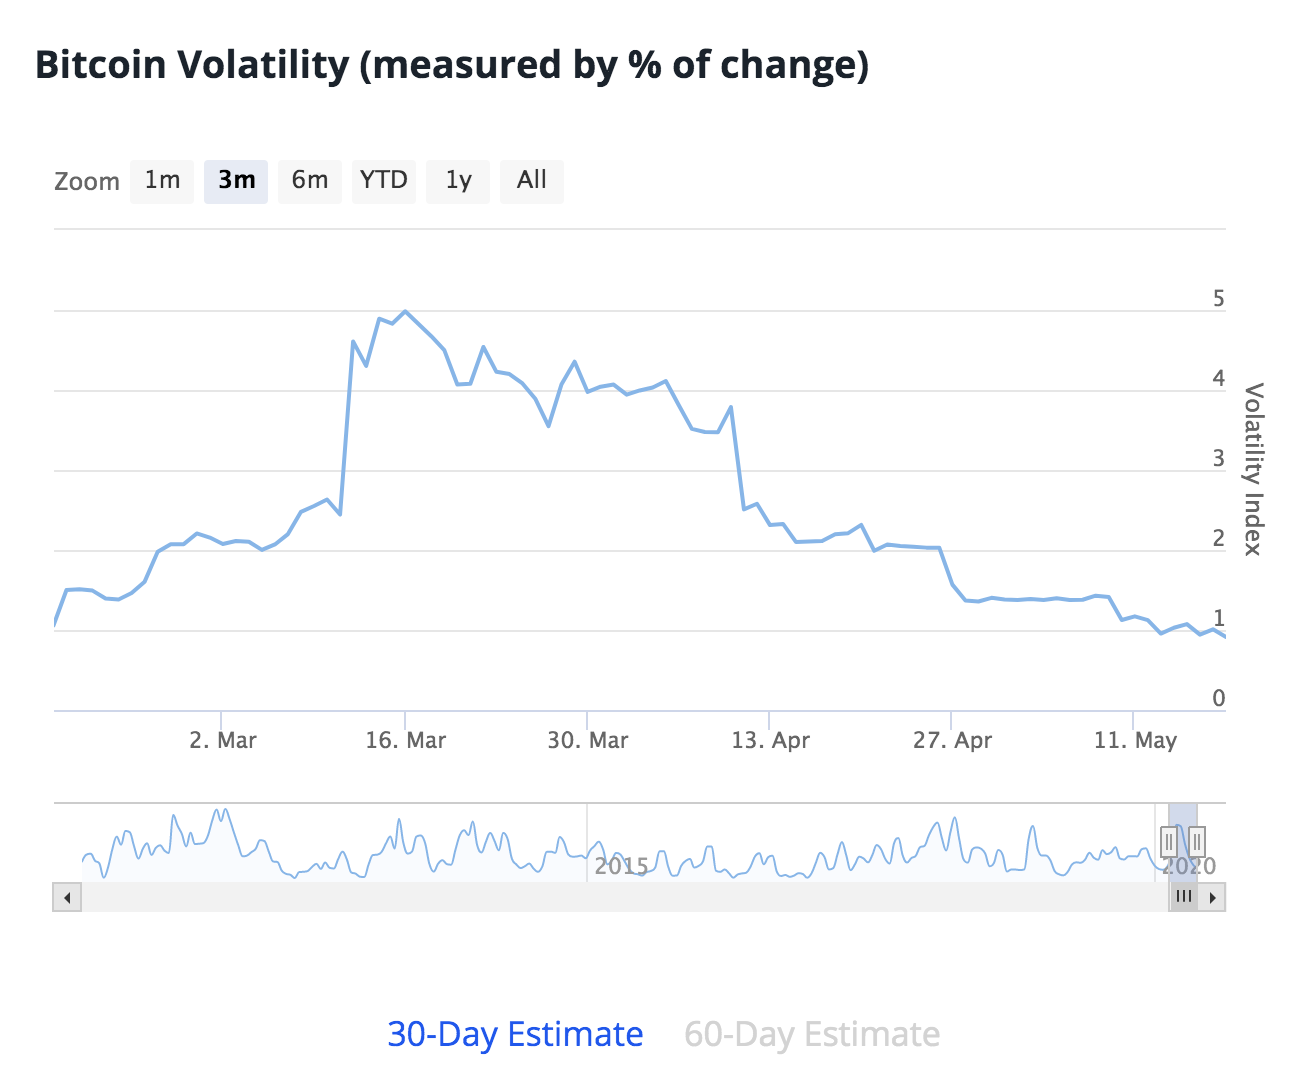 Impact of Bitcoin's Third Halving - Volatility Chart